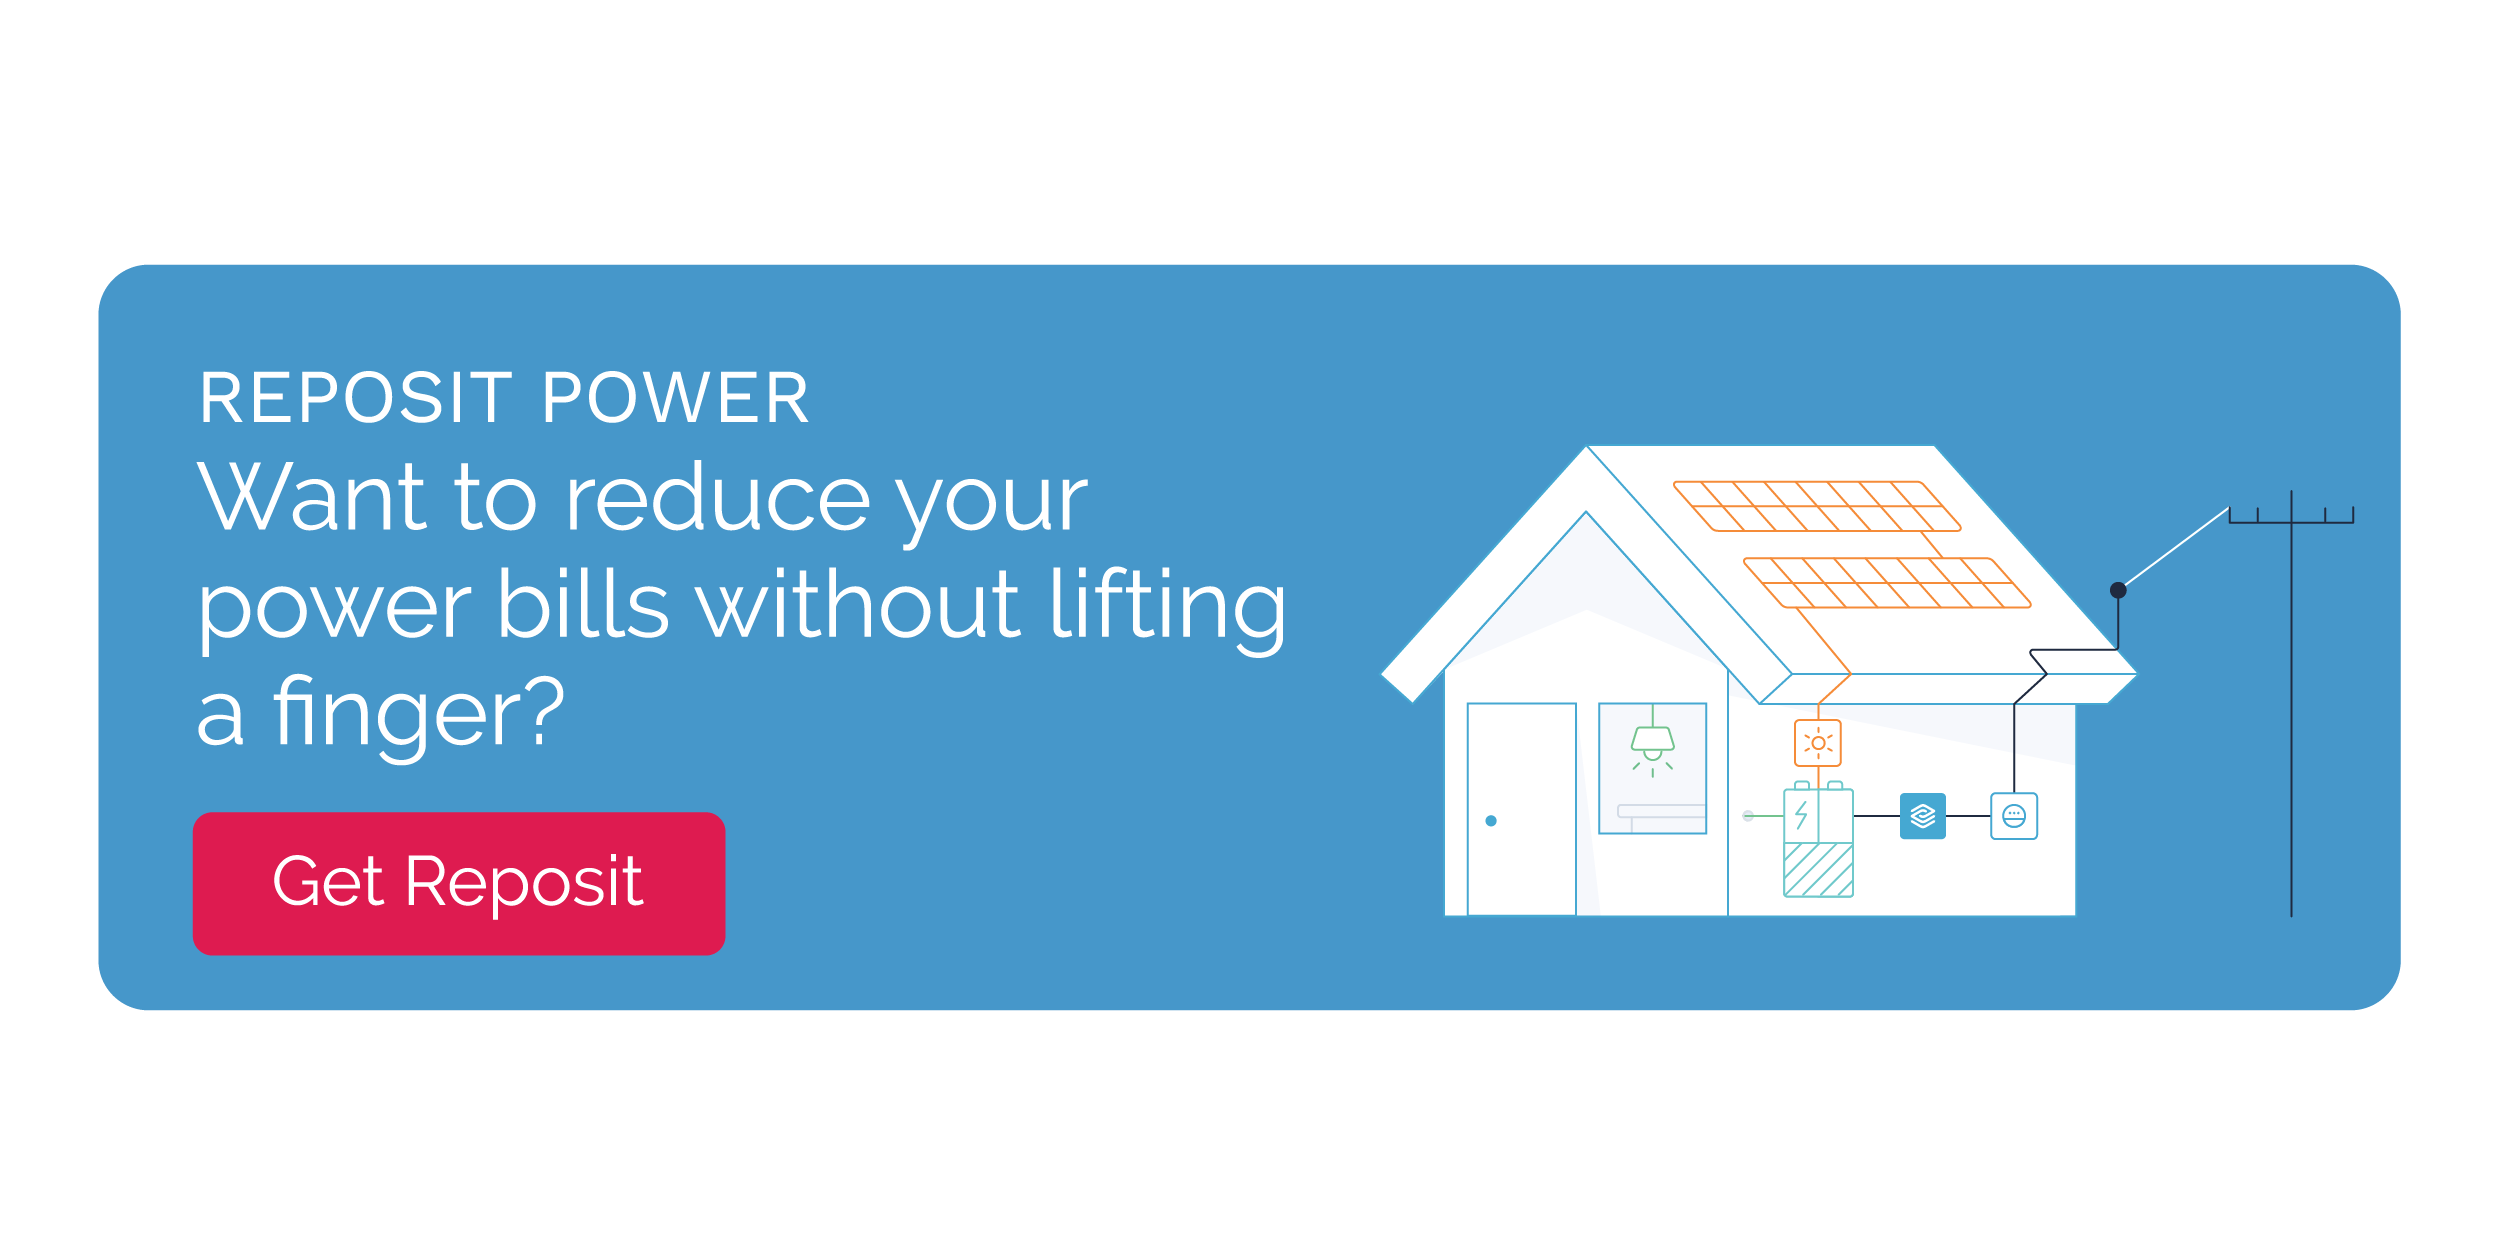 Need help deciding on the right solar battery system for your home?